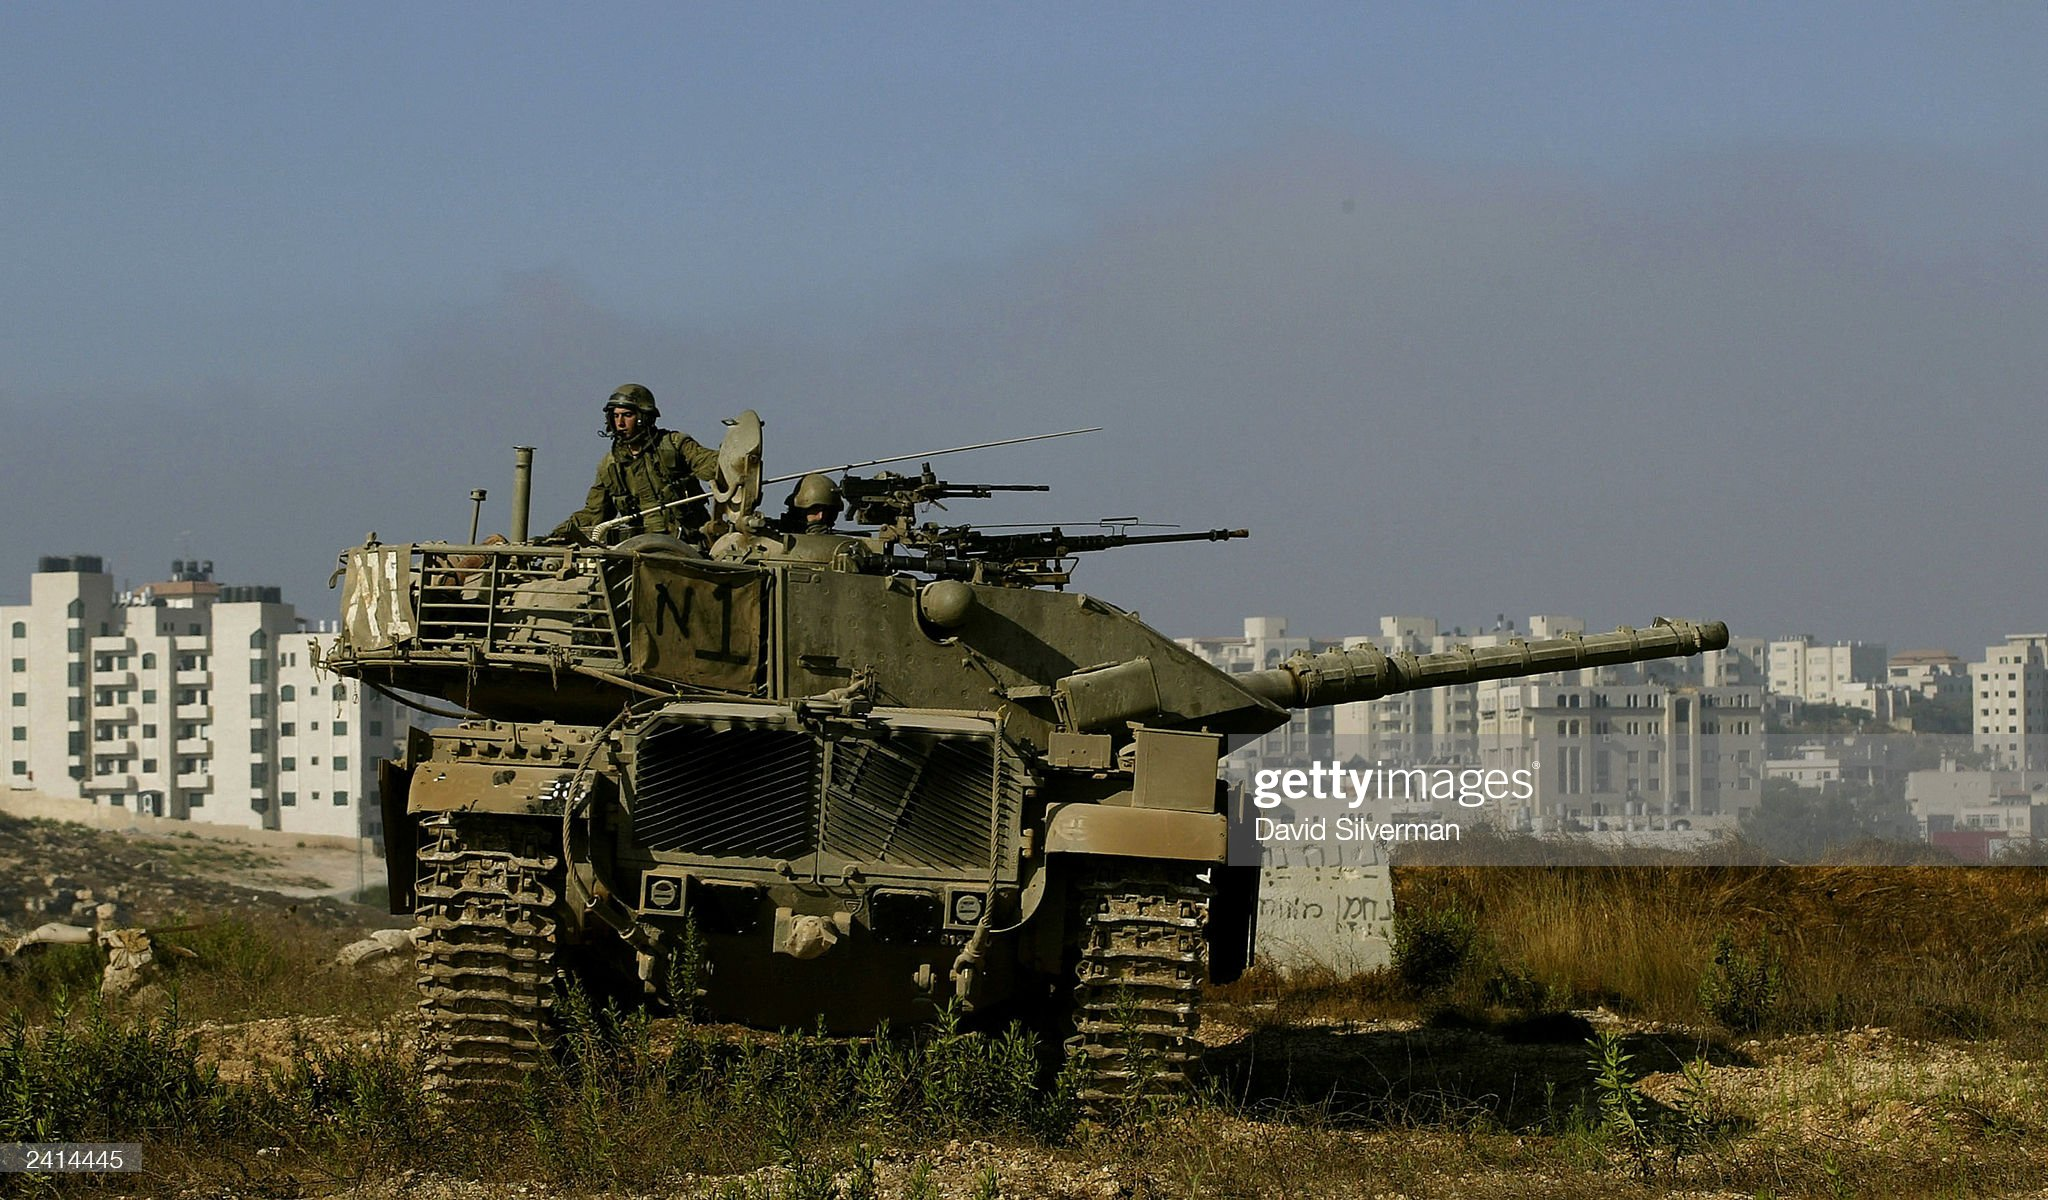 https://media.gettyimages.com/photos/an-israeli-army-merkava-tank-is-deployed-august-21-2003-hours-after-picture-id2414445?s=2048x2048